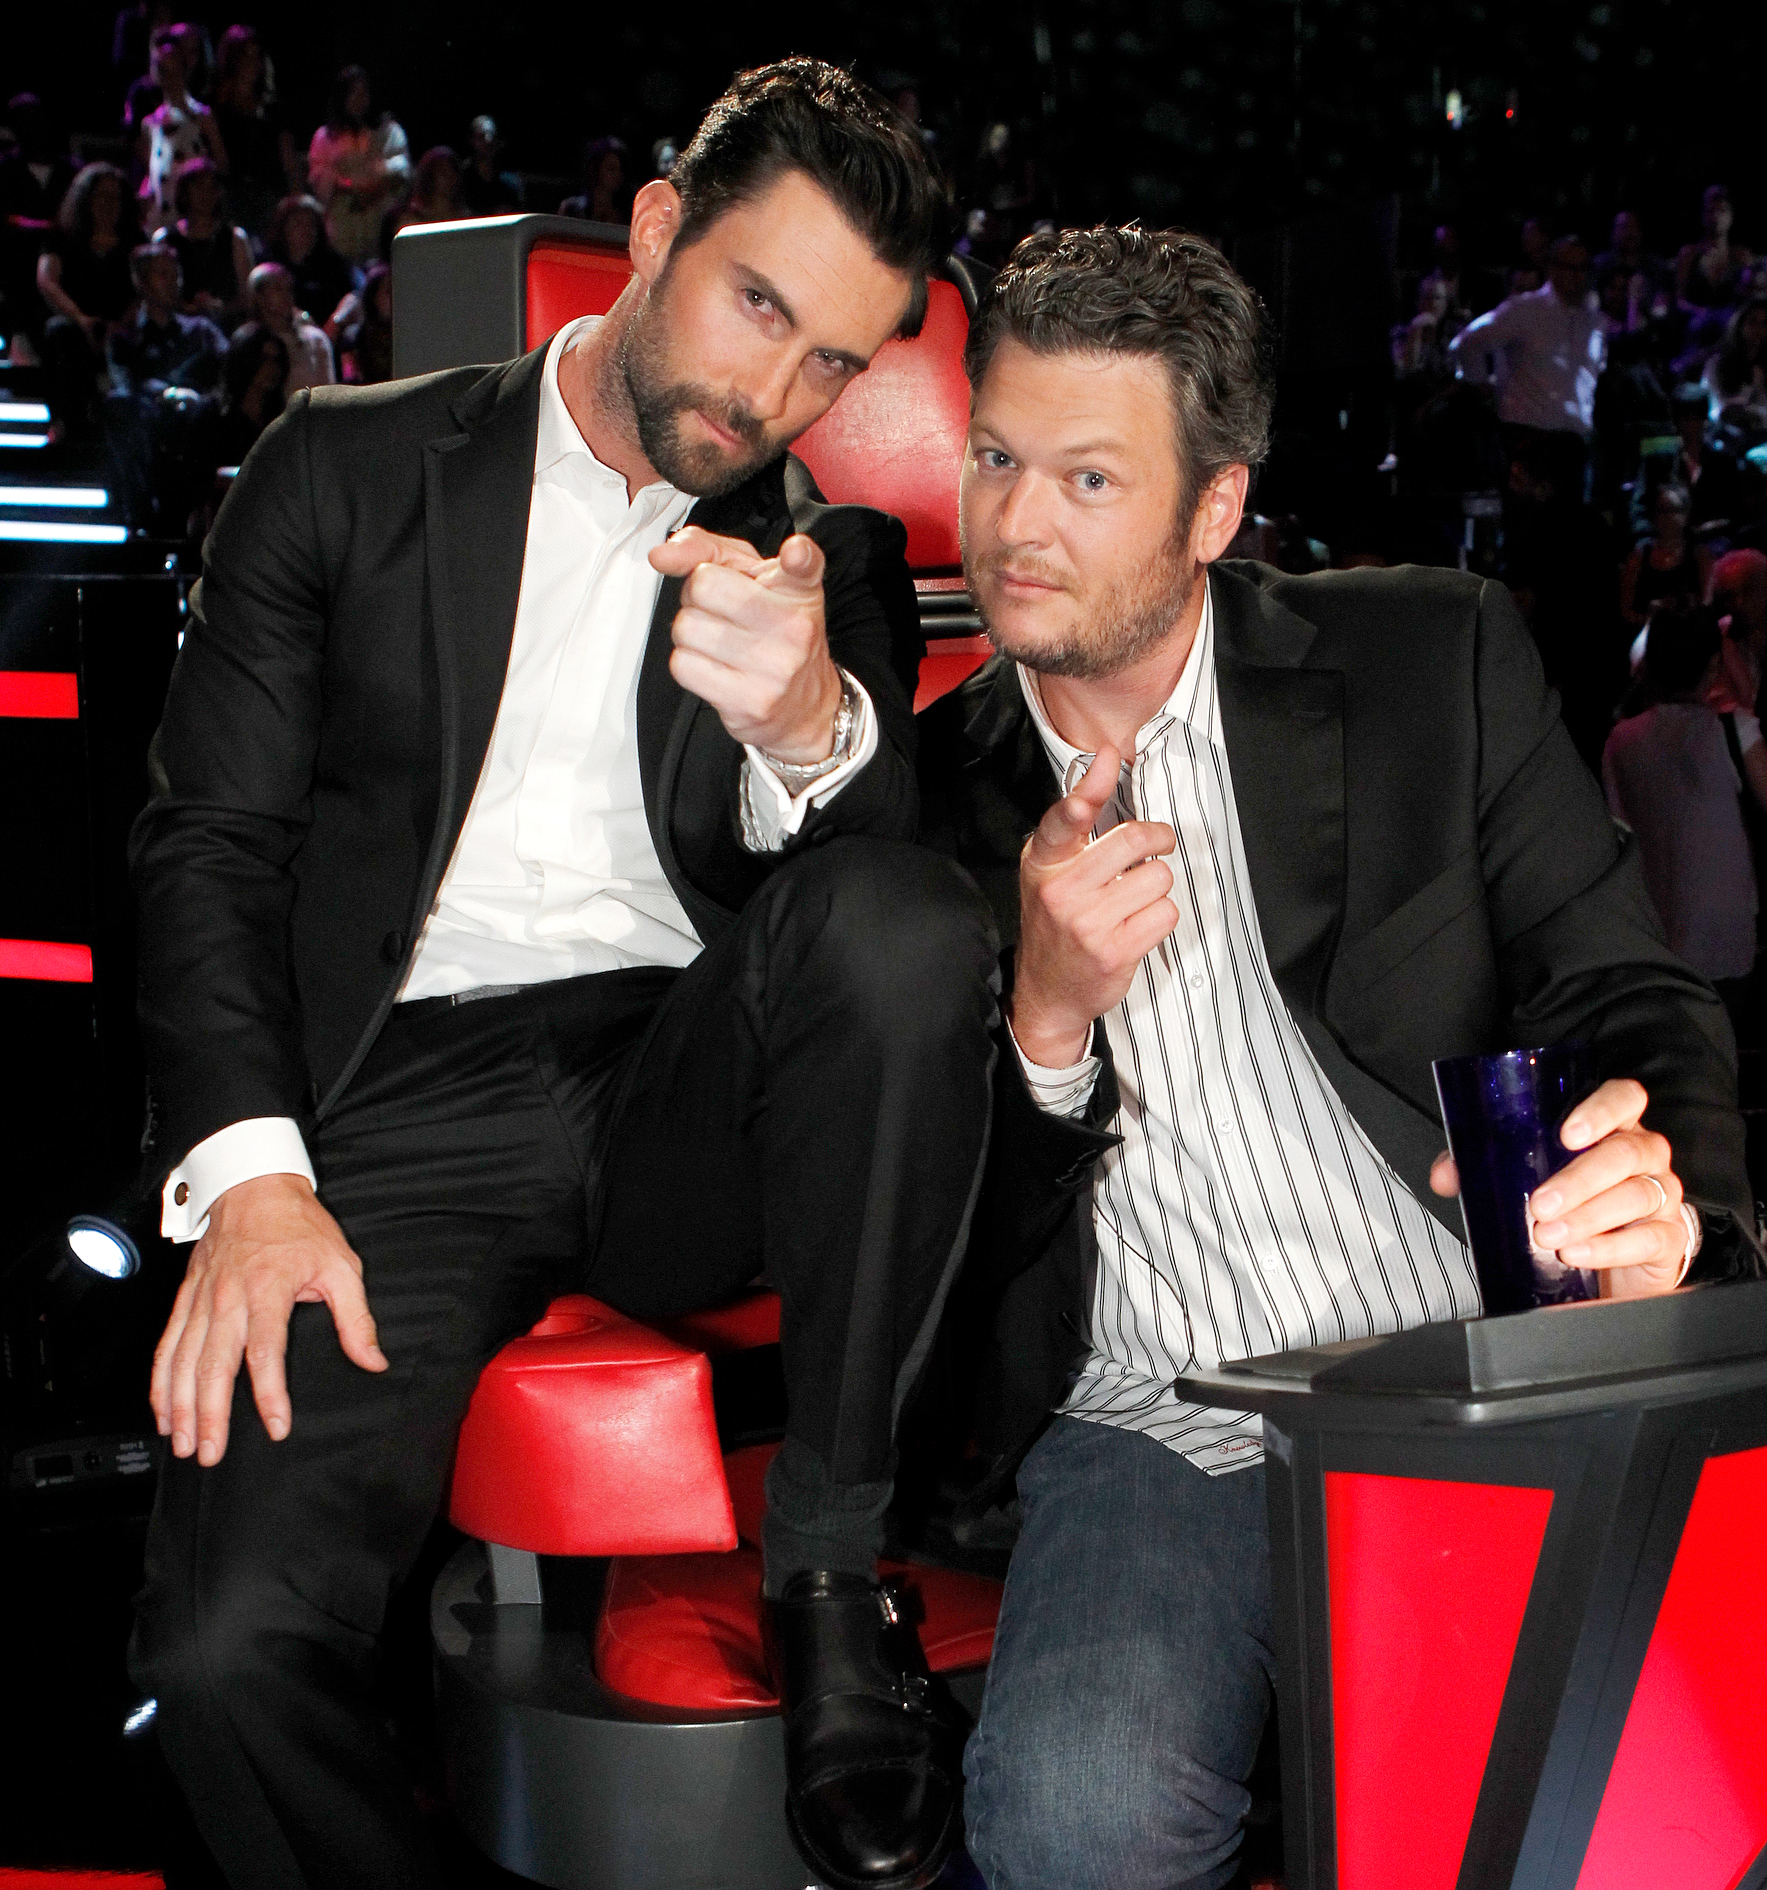 """Adam-Levine-Blake-Shelton - Shelton's heartfelt message to the Maroon 5 frontman featured some of the duo's signature banter. """"Having a hard time wrapping my head around @adamlevine not being at @NBCTheVoice anymore,"""" the country singer tweeted."""